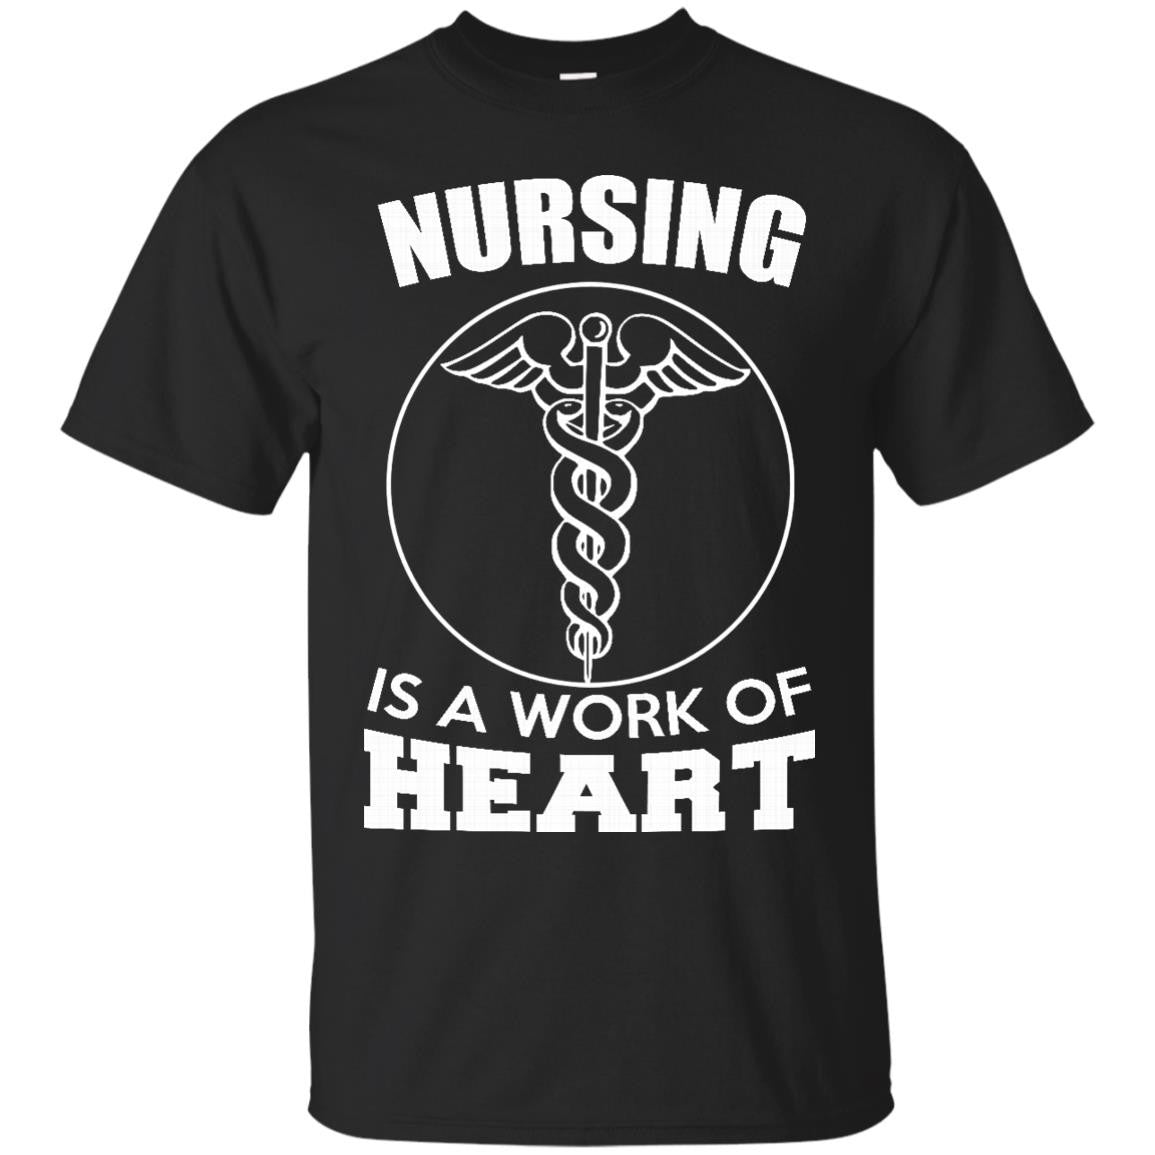 Nursing It's a Work of Heart T-Shirt